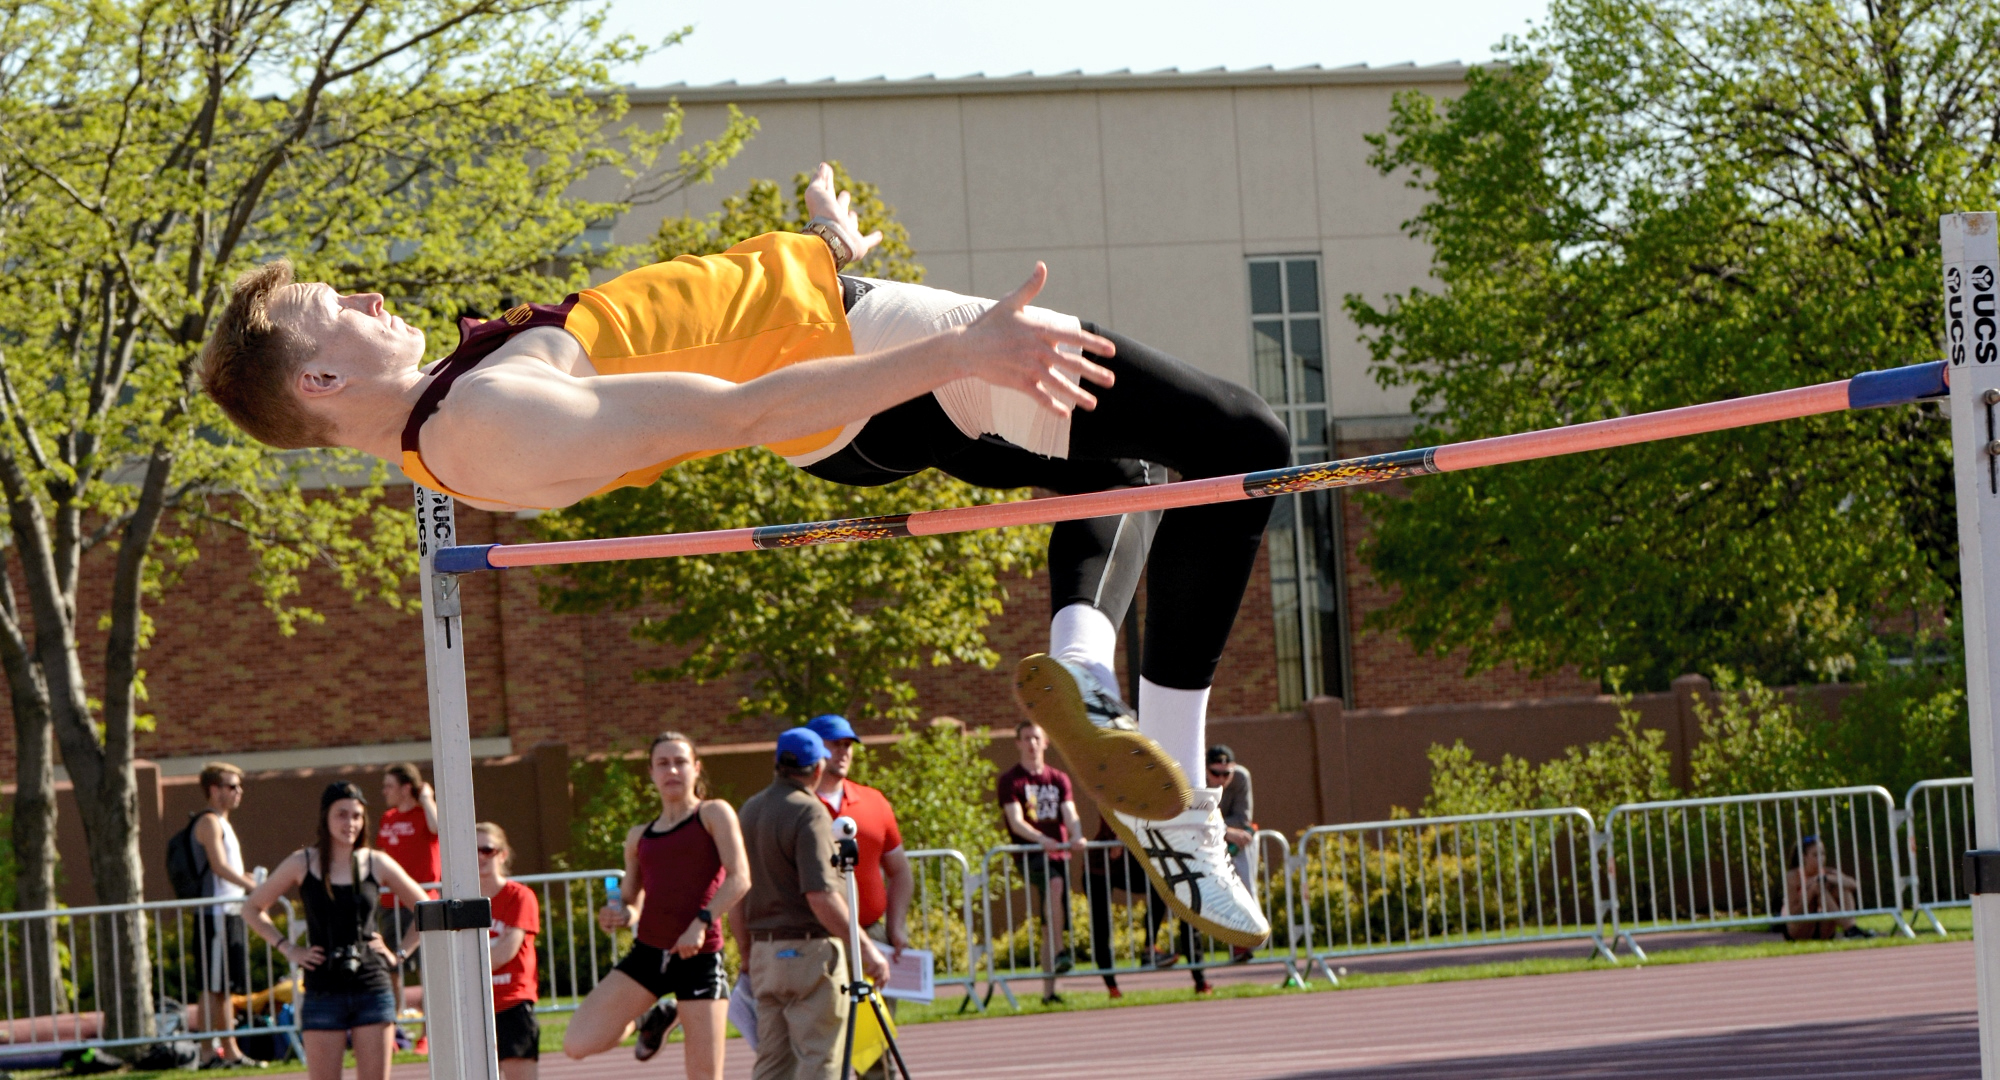 Jackson Schepp clears the bar on his way to winning the high jump on Day 1 at the MIAC Championship Meet. (Photo courtesy of Hamline Sports Info Dept.)